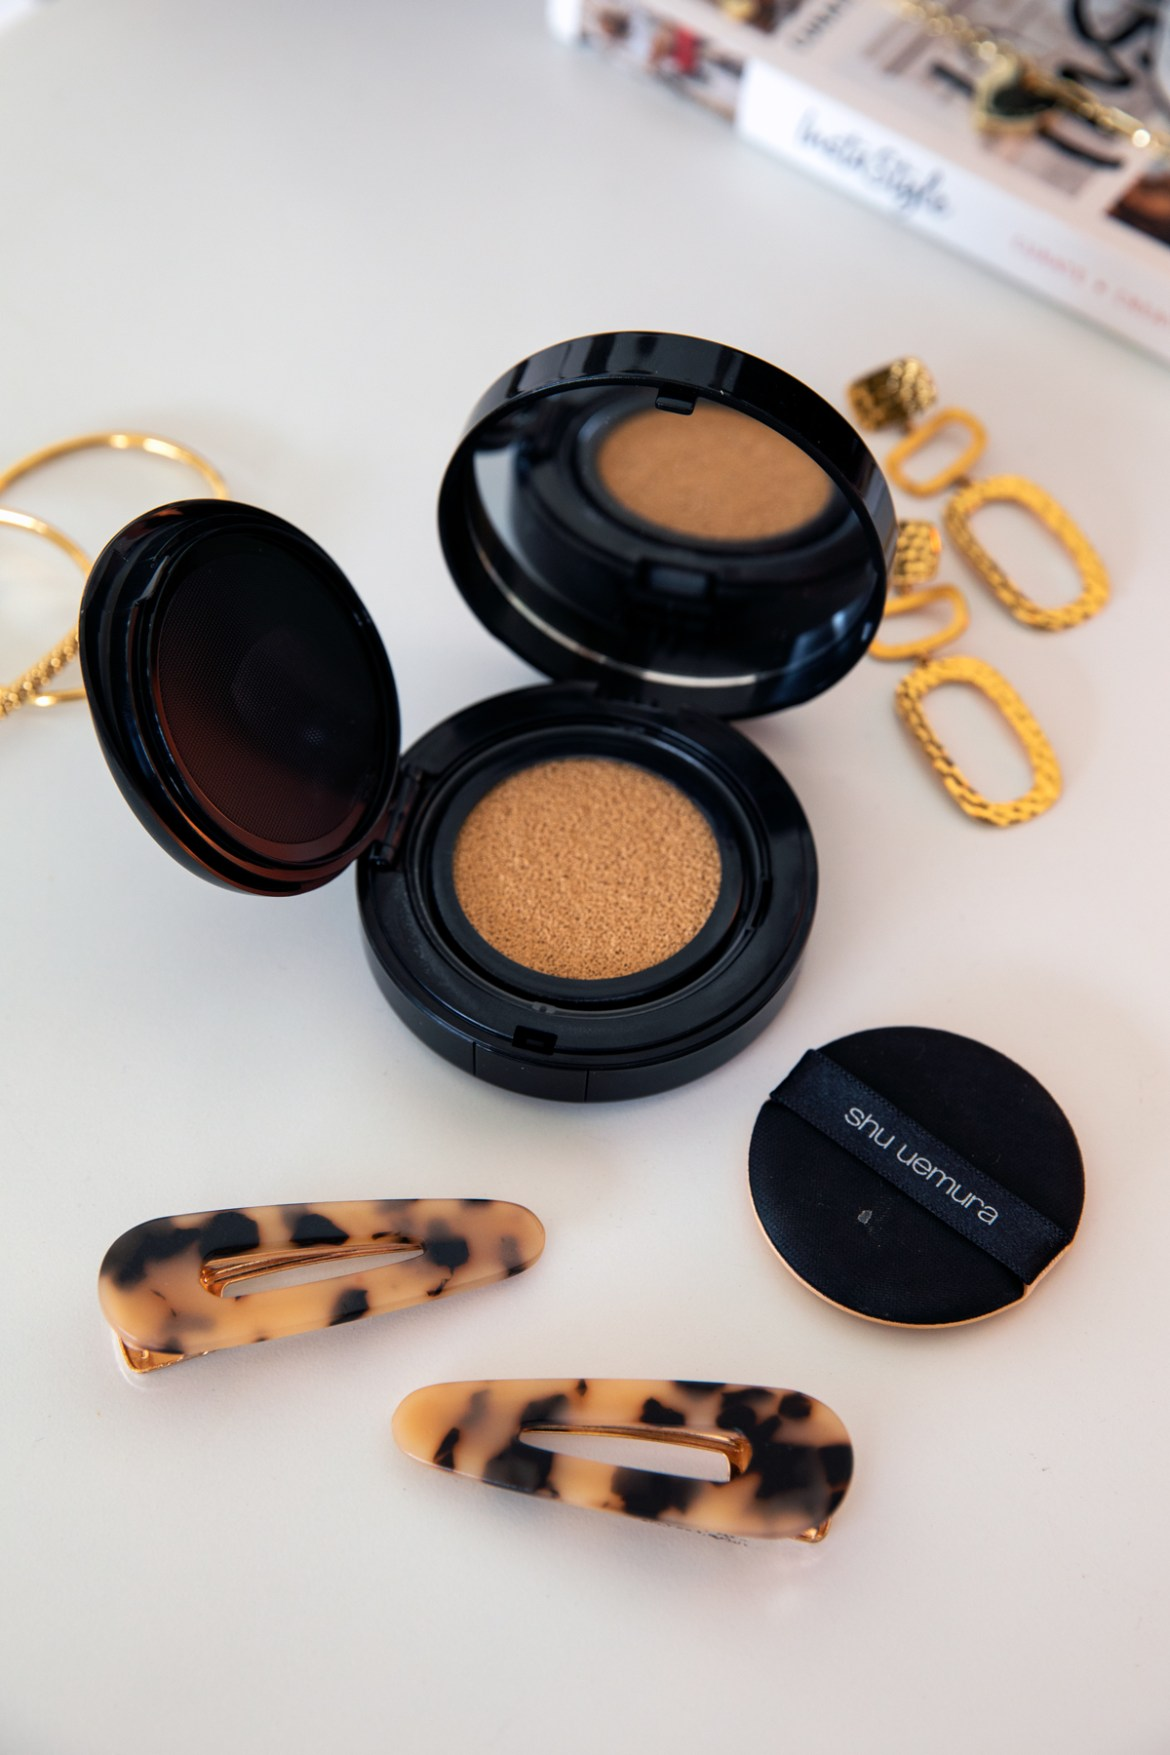 Shu Uemura foundation compact product review by Inspiring Wit from Sephora haul